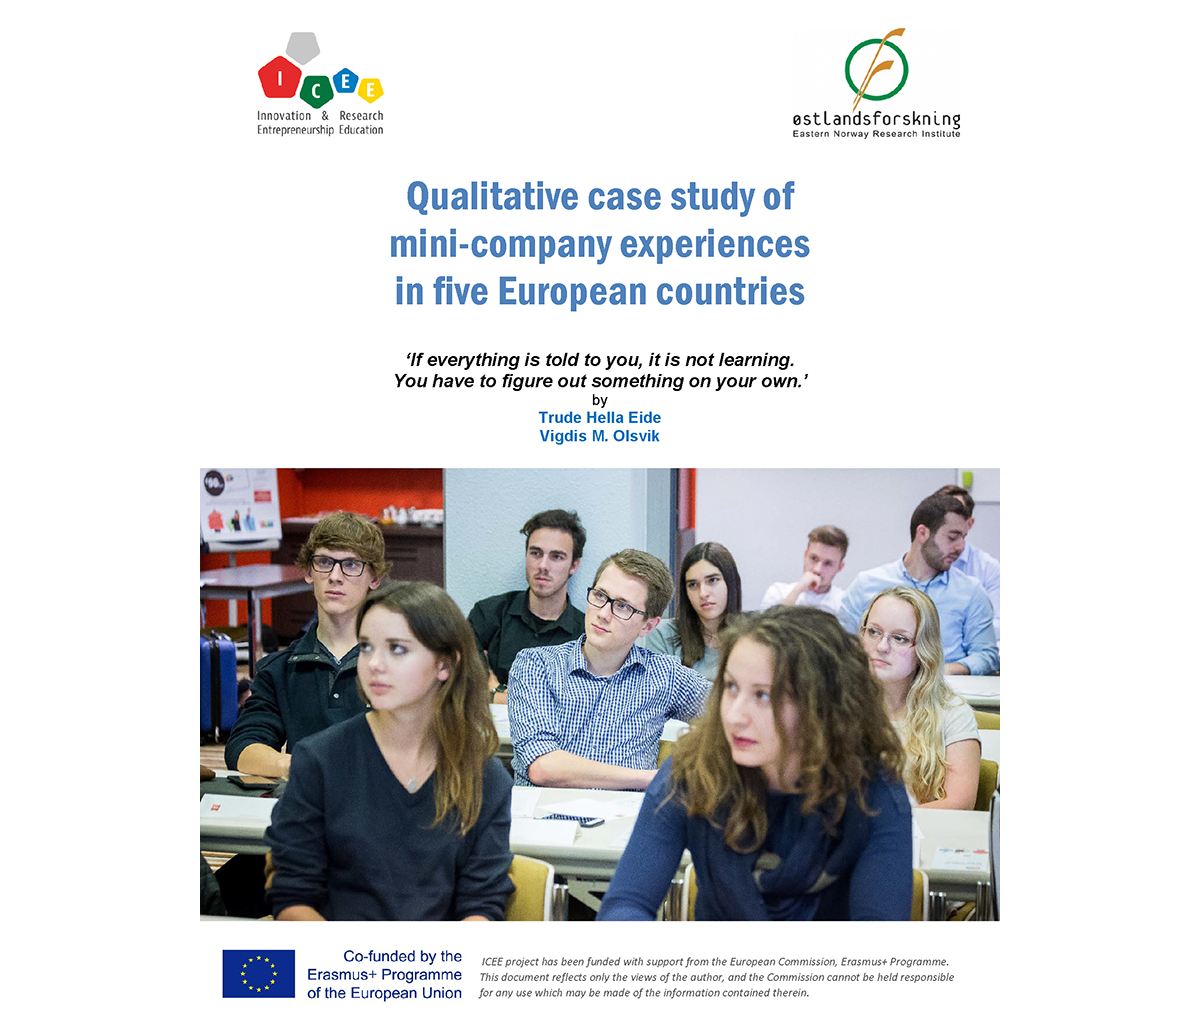 Qualitative case study of mini-company experiences in five European countries